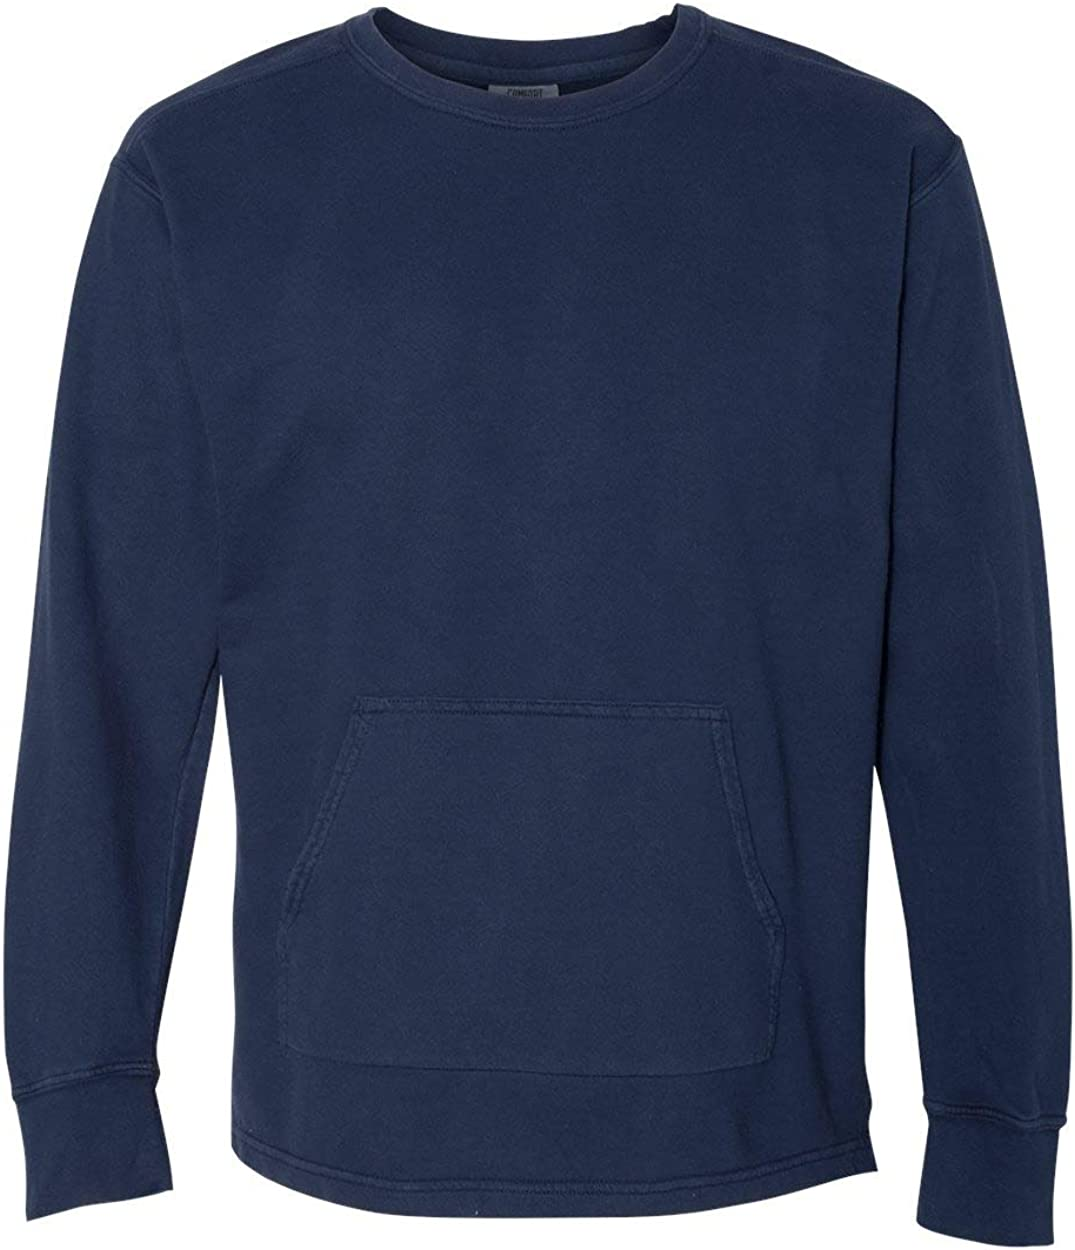 1536 Comfort Colors French Terry Crewneck